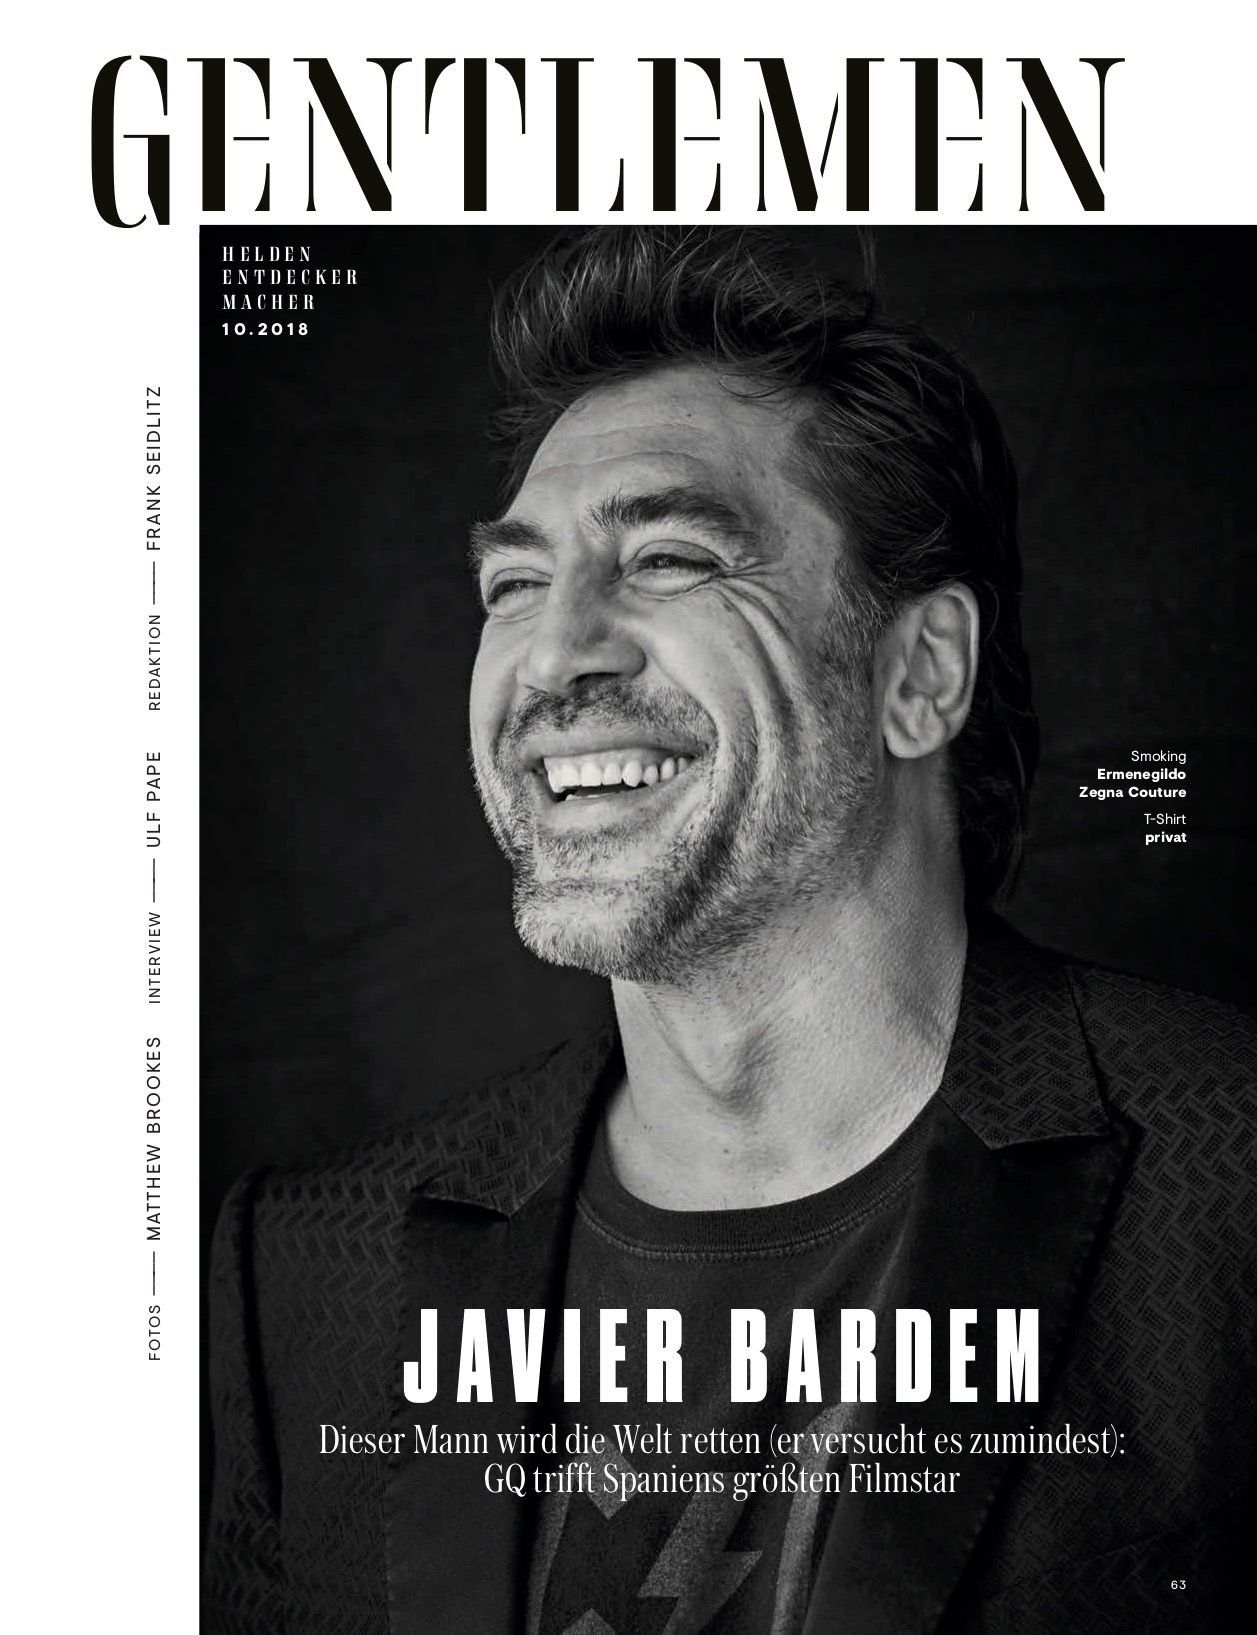 GQ with Javier Bardem 2 by Claudia ENGLMANN